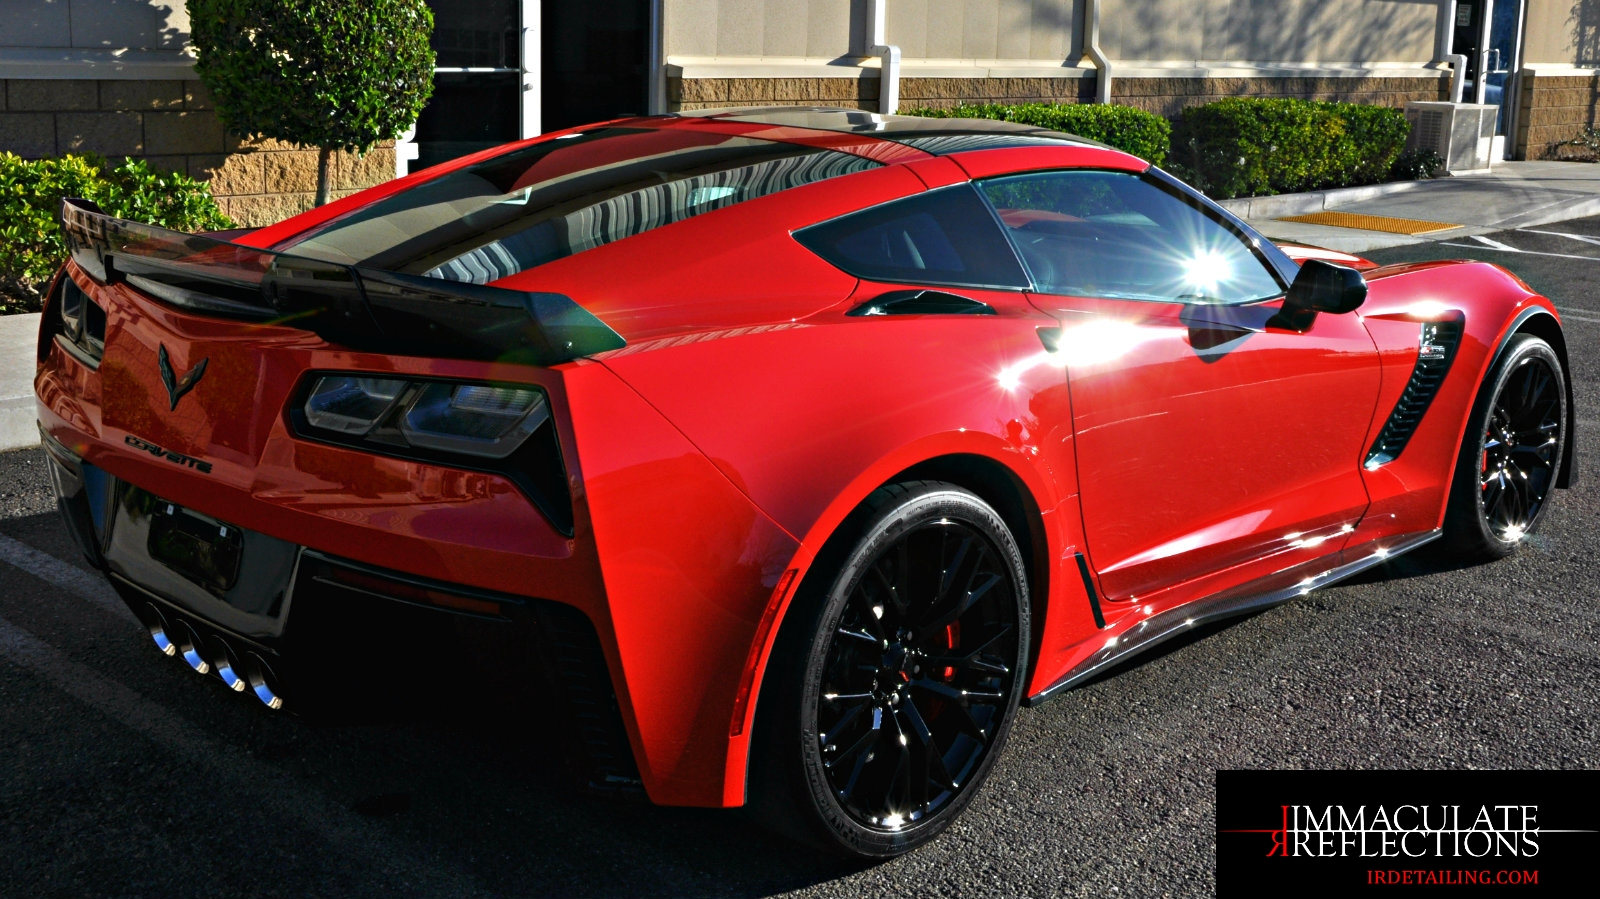 This C7 Corvette is ready for the car show after an Immaculate Reflections full paint correction & CQuartz Finest Reserve ceramic coating application.